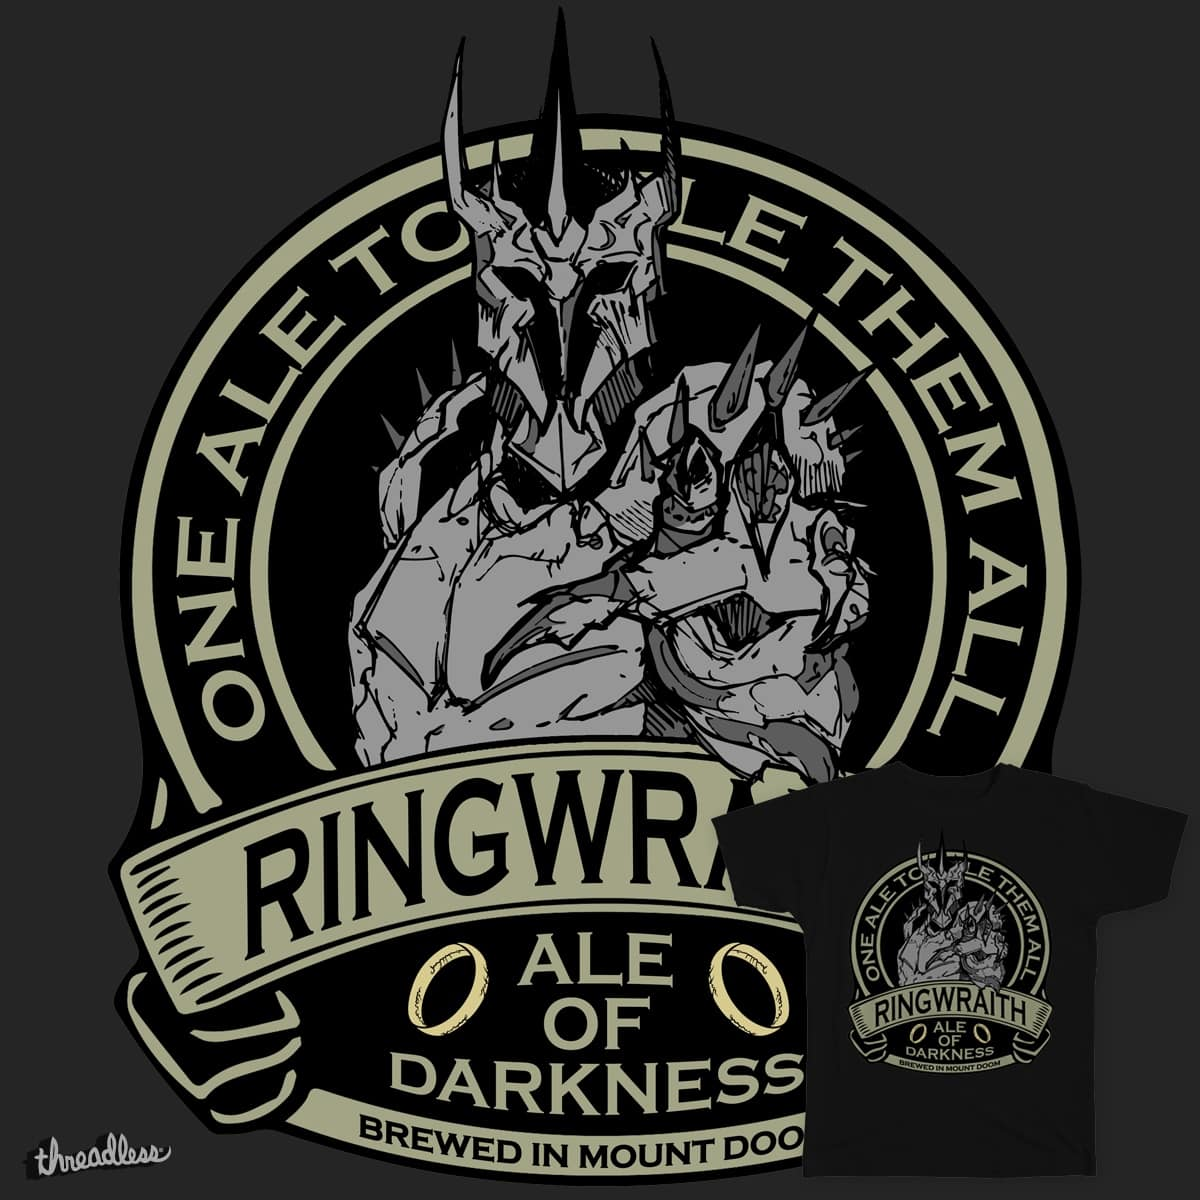 Ringwraith - Ale Of Darkness by Immortalized on Threadless